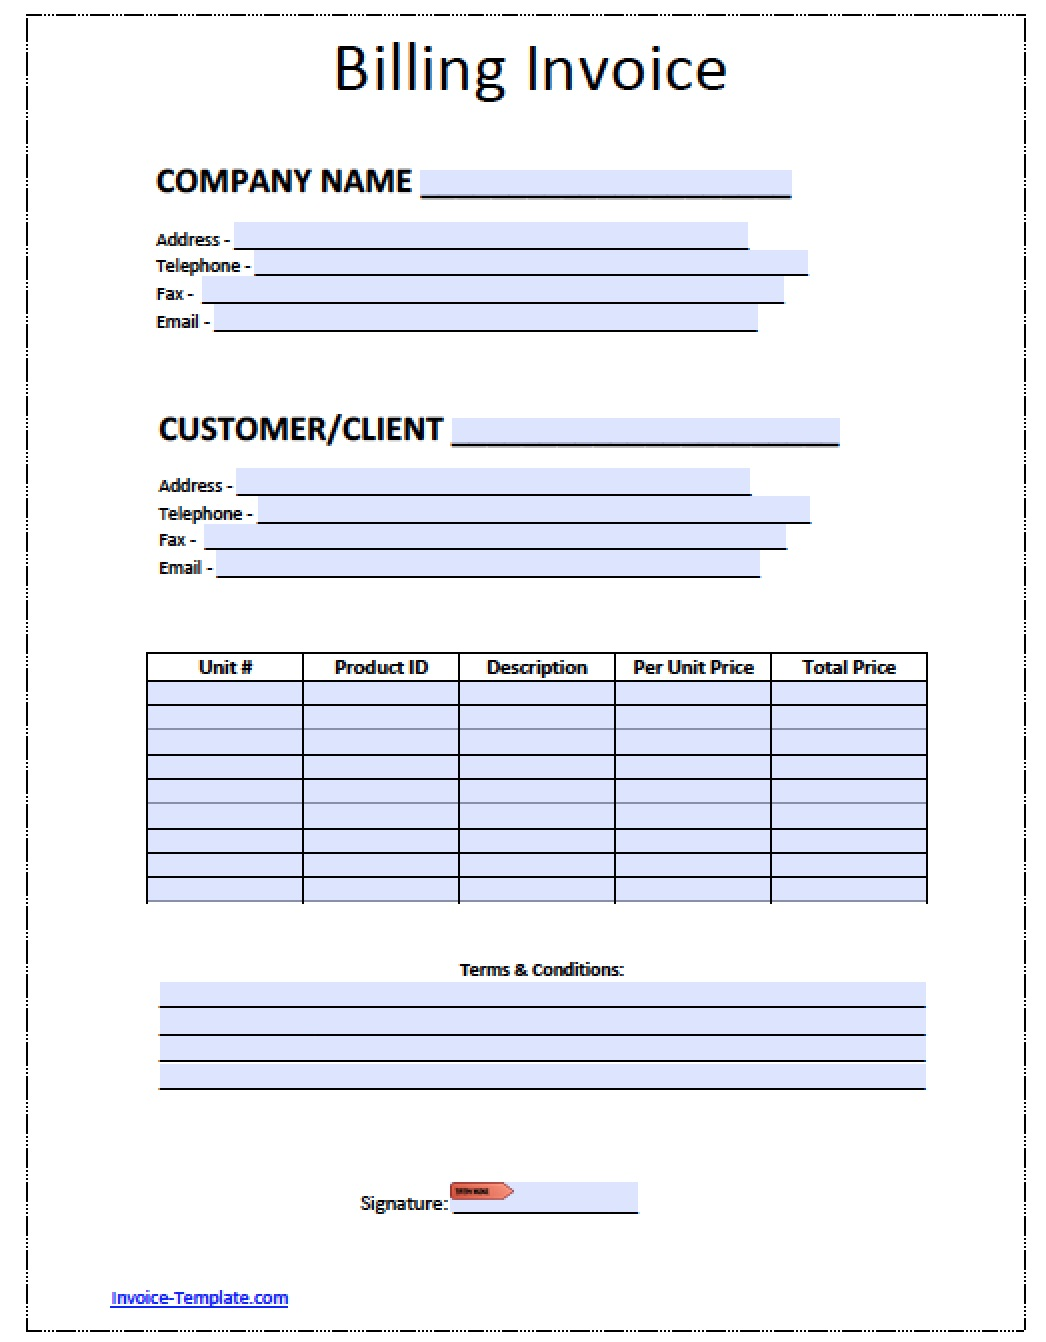 Aaaaeroincus  Splendid Billing Invoice Invoices Faq U Cloudflare Support Billing  With Foxy Free Billing Invoice Template  Excel  Pdf  Word Doc  Billing With Cute What Should An Invoice Contain Also Commercial Invoice Form Pdf In Addition Mechanic Shop Invoice Templates And Invoice Tamplate As Well As Customizing Invoices In Quickbooks Additionally Blank Invoice Word From Happytomco With Aaaaeroincus  Foxy Billing Invoice Invoices Faq U Cloudflare Support Billing  With Cute Free Billing Invoice Template  Excel  Pdf  Word Doc  Billing And Splendid What Should An Invoice Contain Also Commercial Invoice Form Pdf In Addition Mechanic Shop Invoice Templates From Happytomco